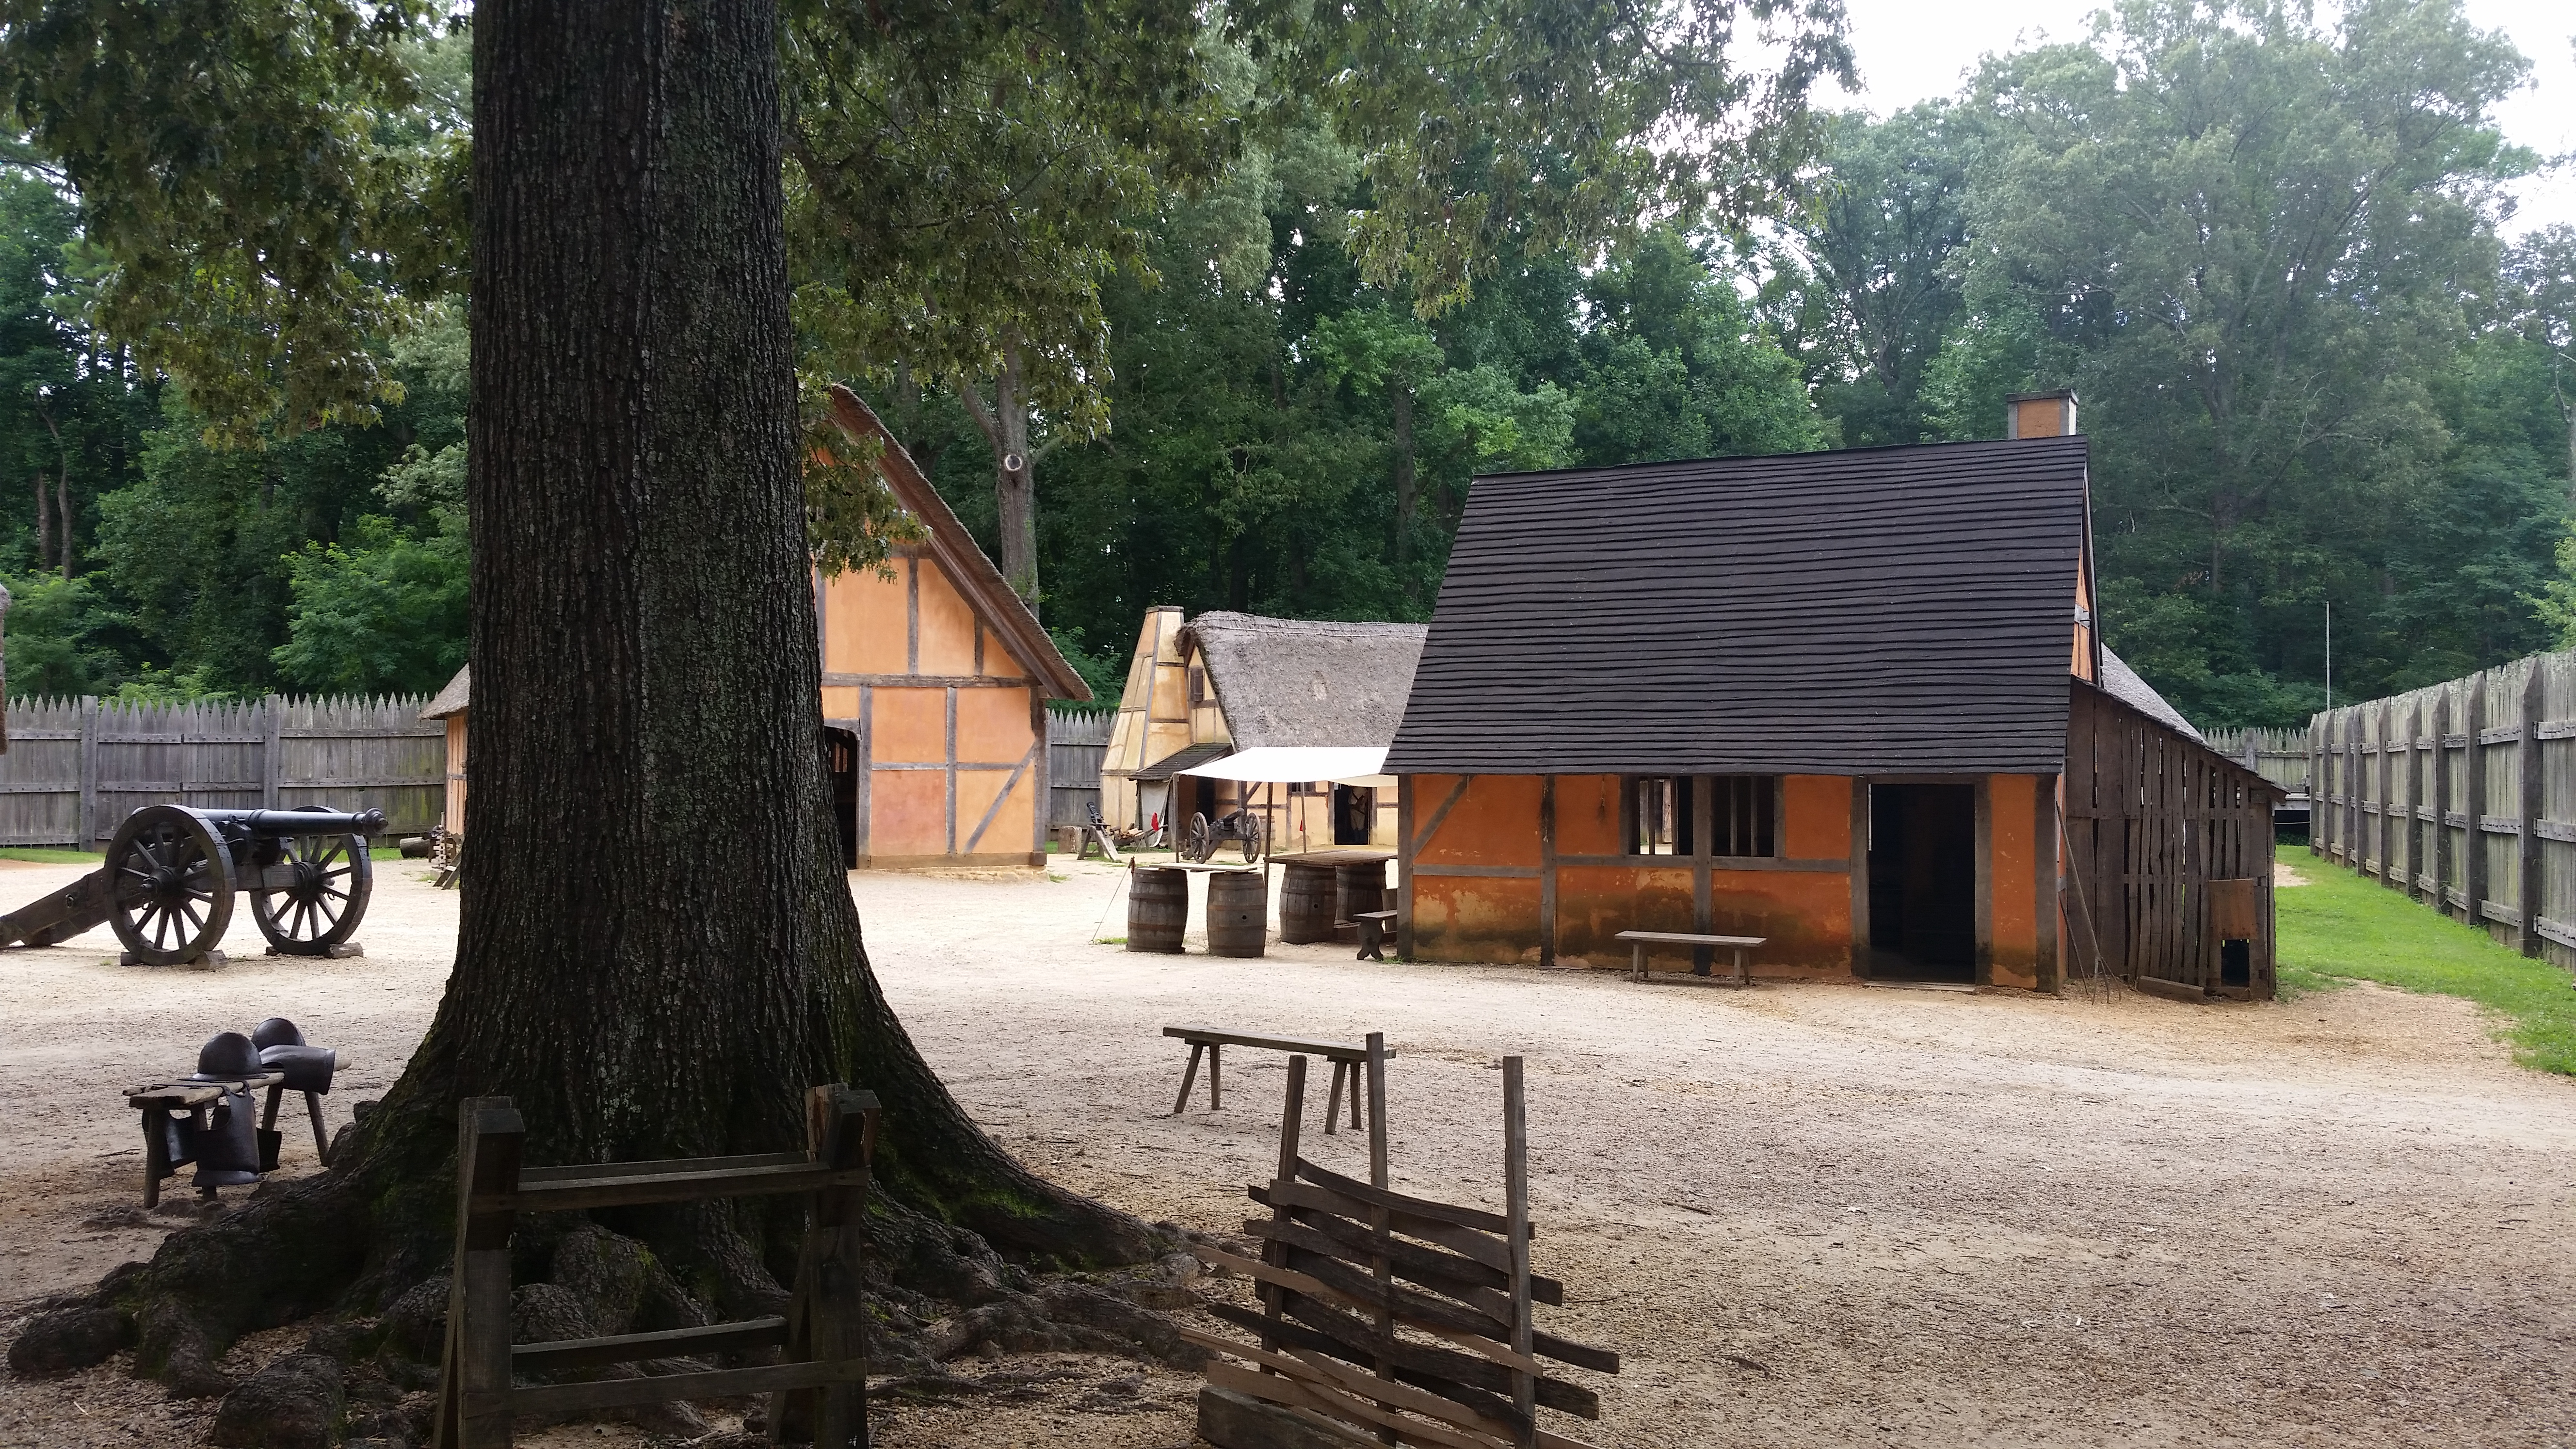 jamestown virginia settlement The first permanent british colony in the new world withstands hostile natives and hardships in its first years.